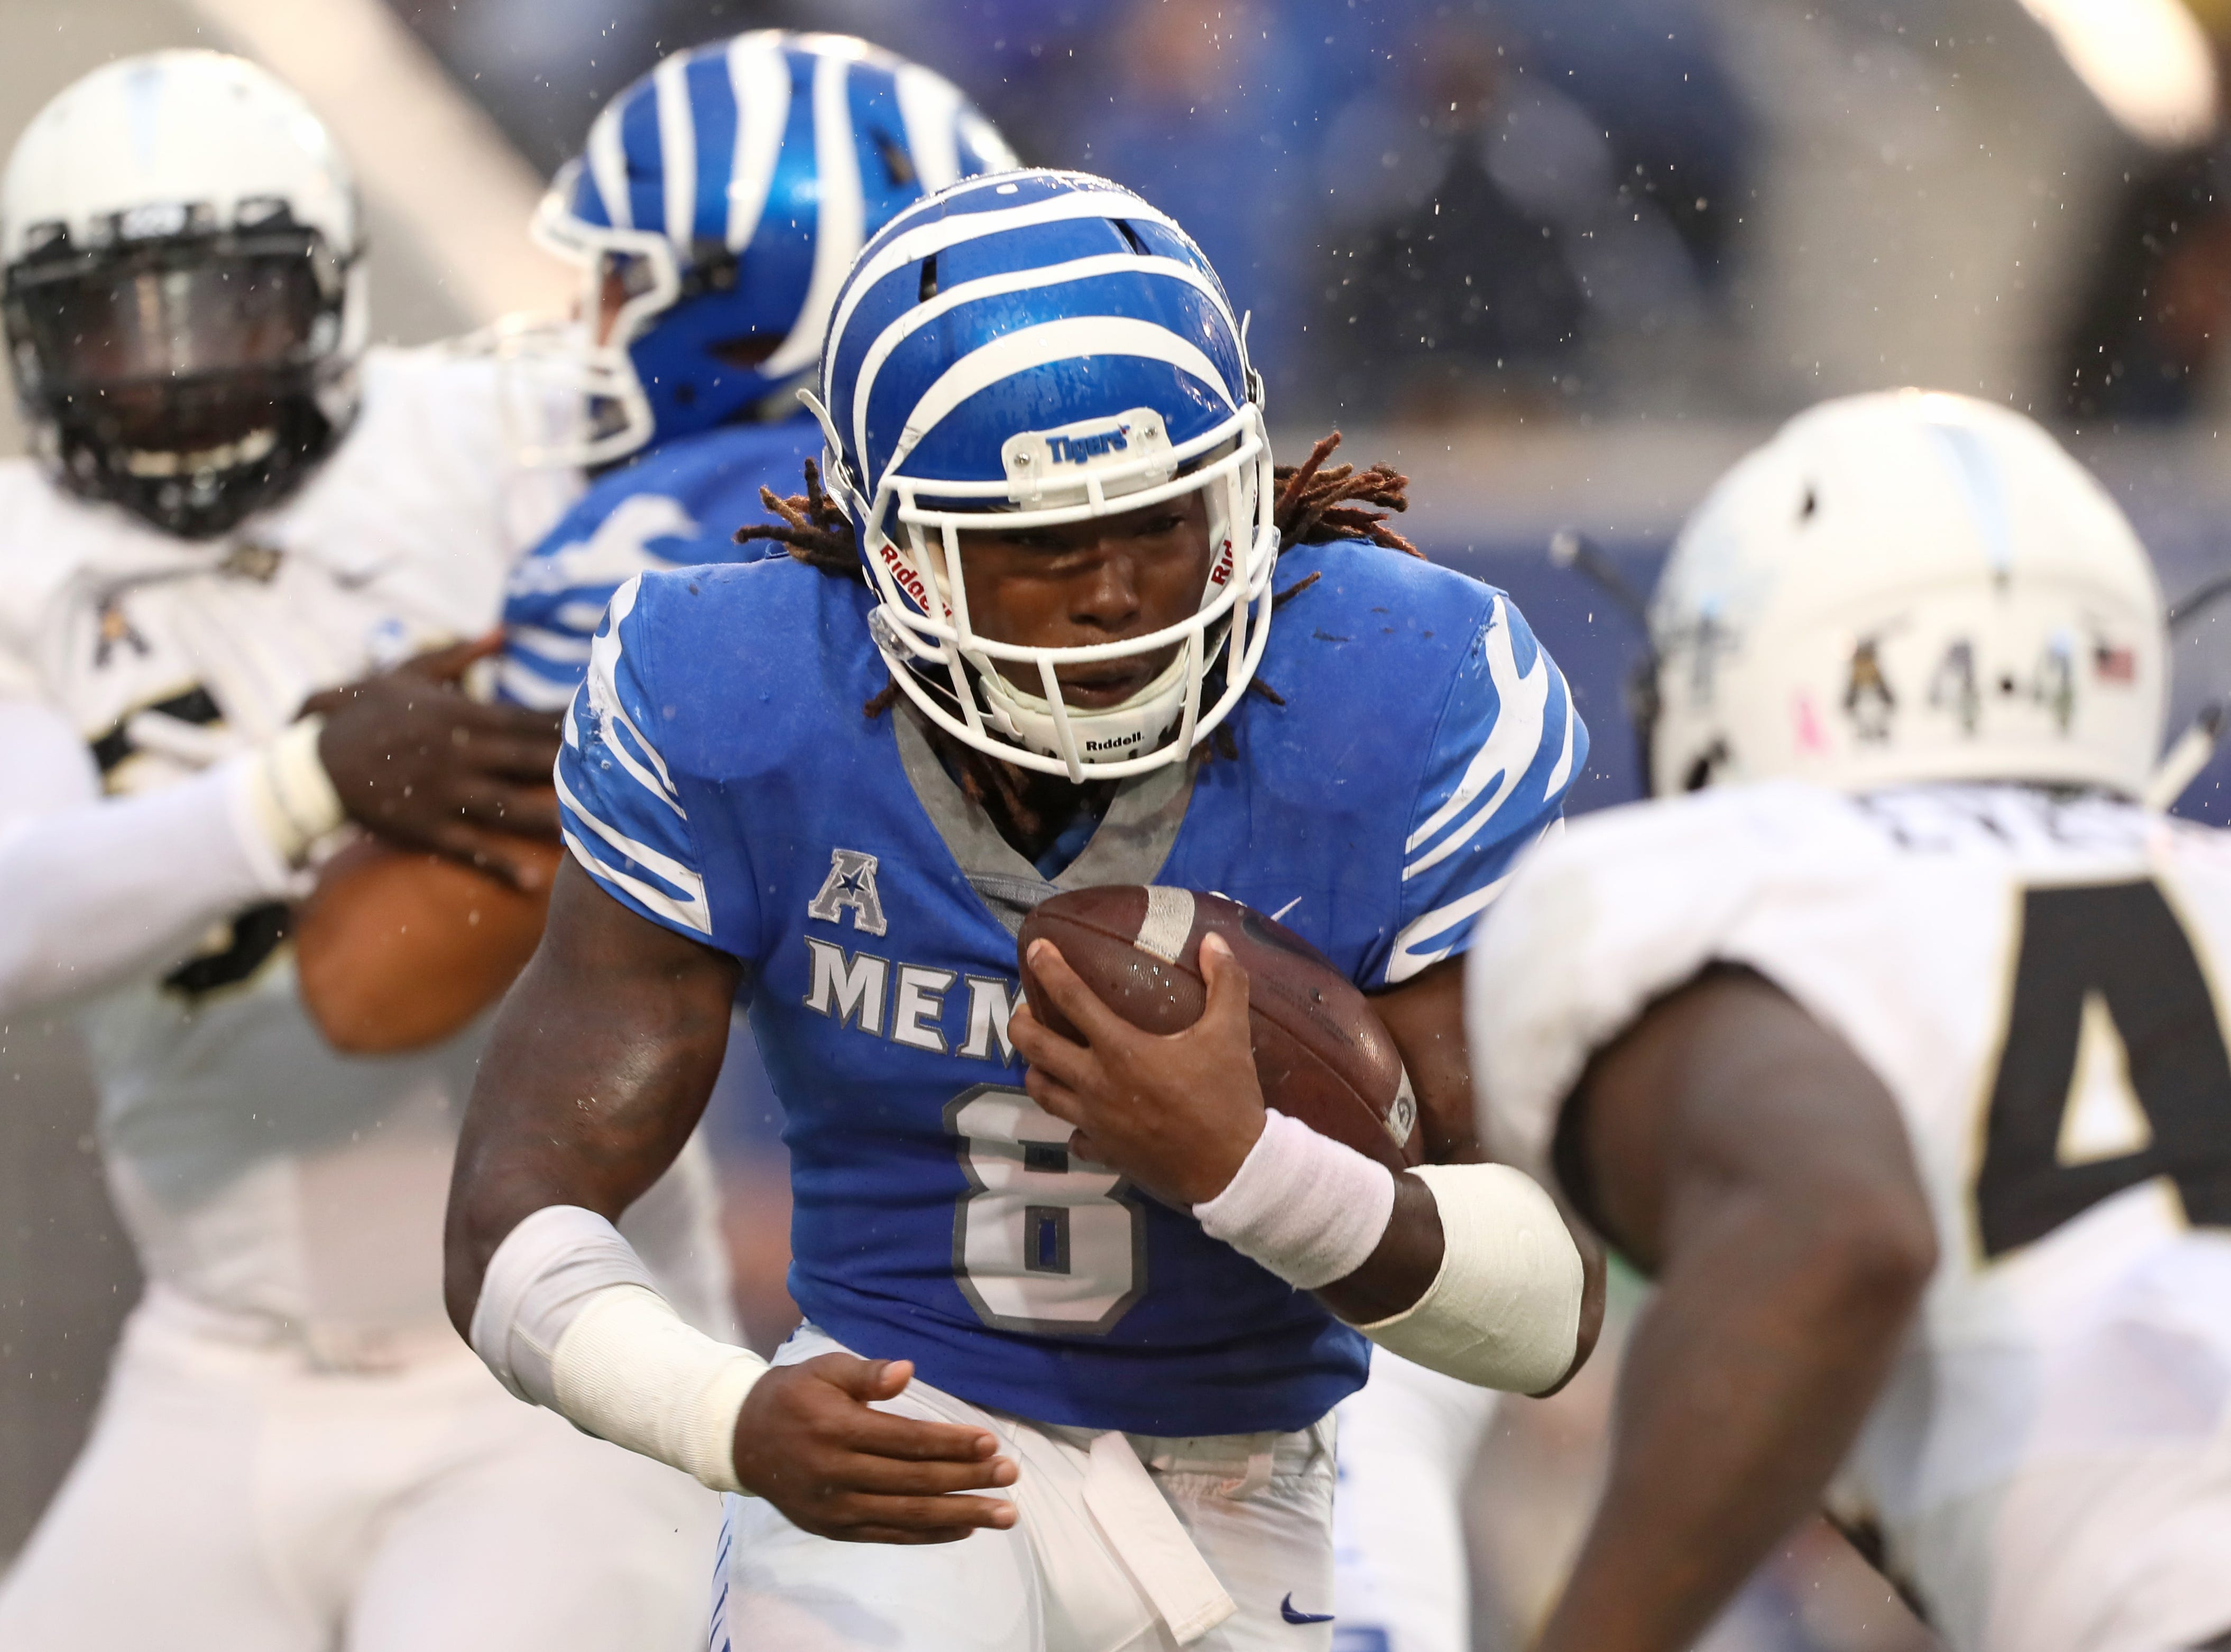 Memphis running back Darrell Henderson runs the ball against UCF during their game at the Liberty Bowl in Memphis, Tenn., Saturday, October 13, 2018.